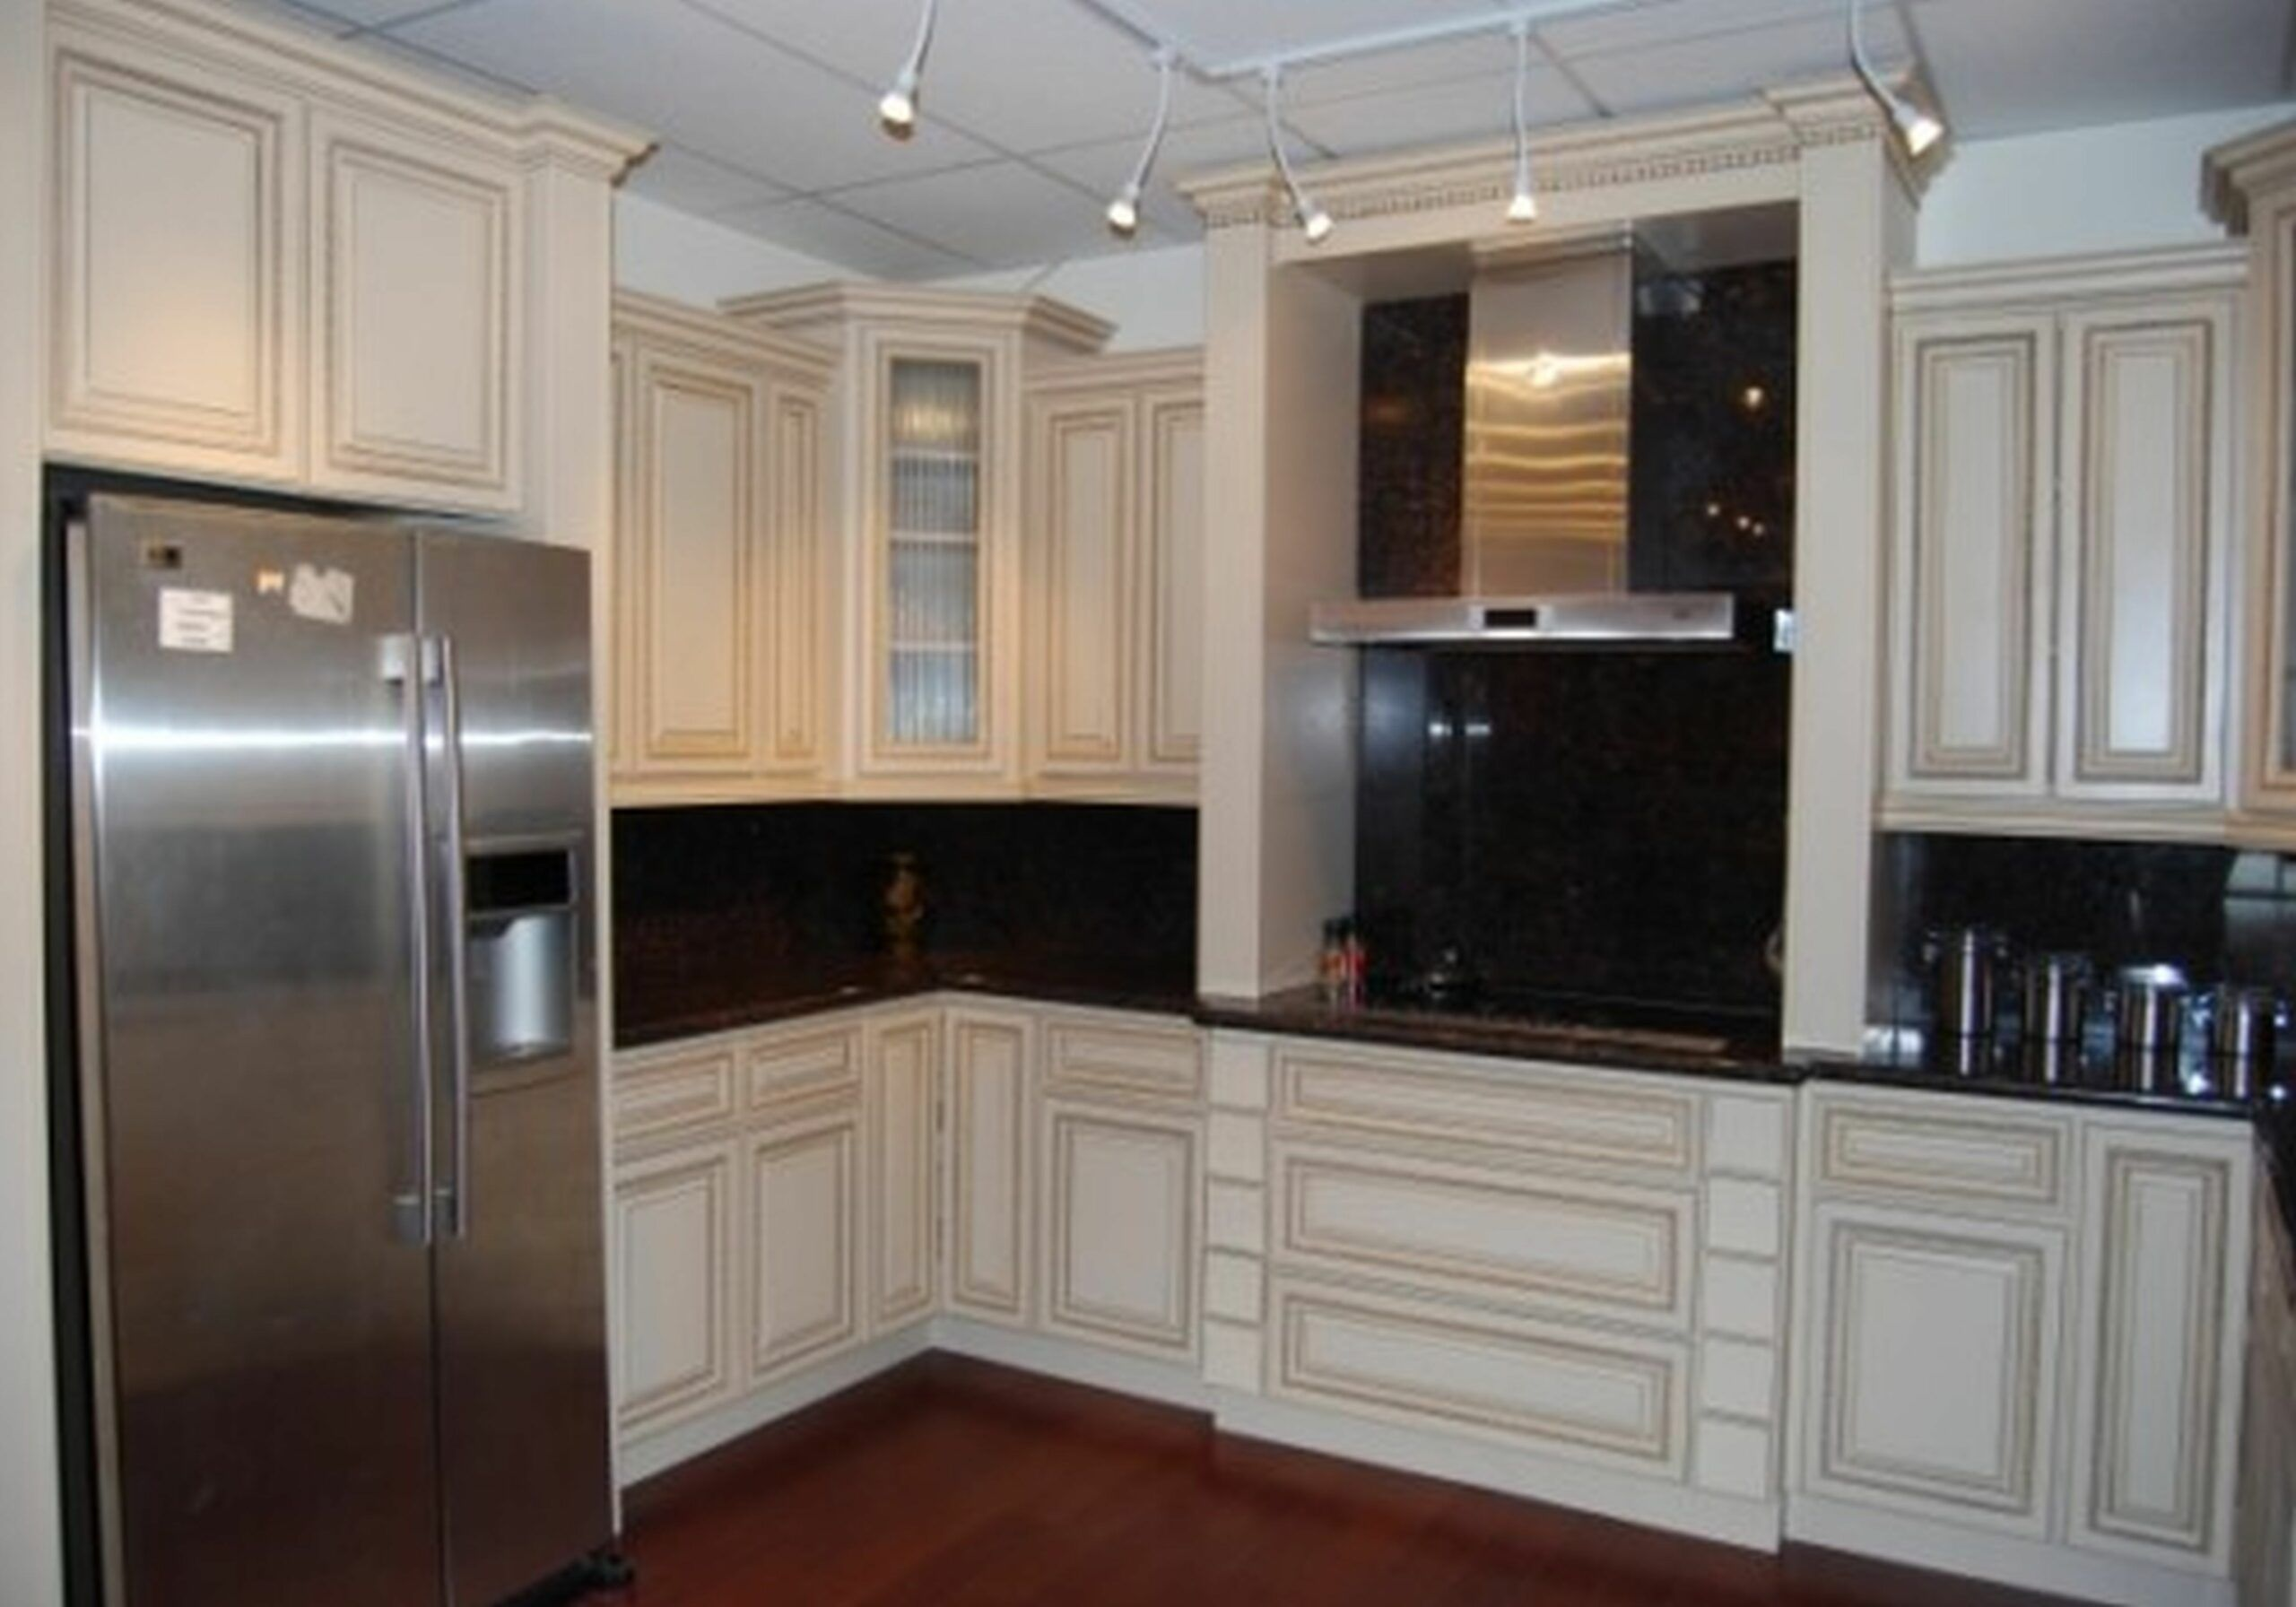 Why You Should Not Go To Kitchen Cabinets At Home Depot And Lowes In 2020 Kitchen Cabinets Home Depot Kitchen Cabinets For Sale Kitchen Cabinets